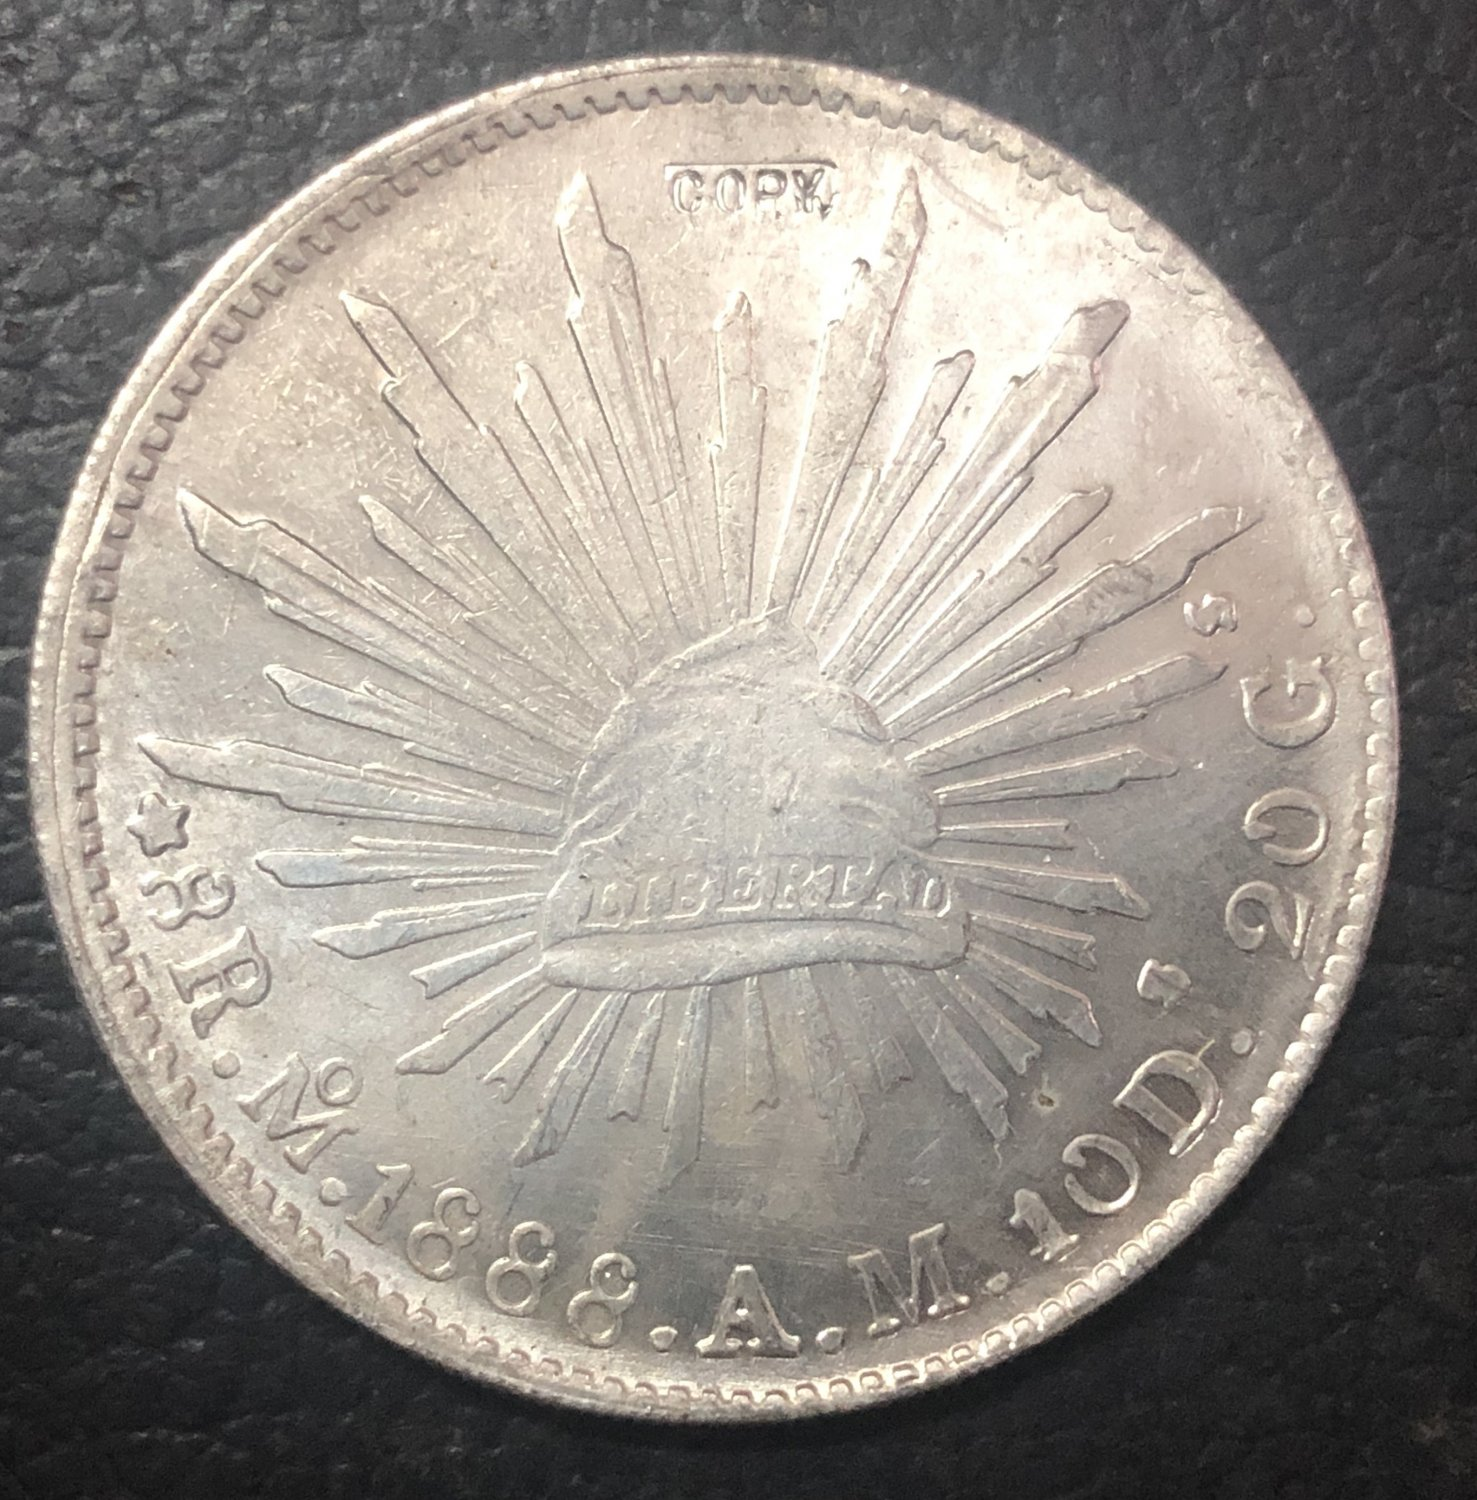 1888 Mexico 8 Reales Silver Plated Copy coin